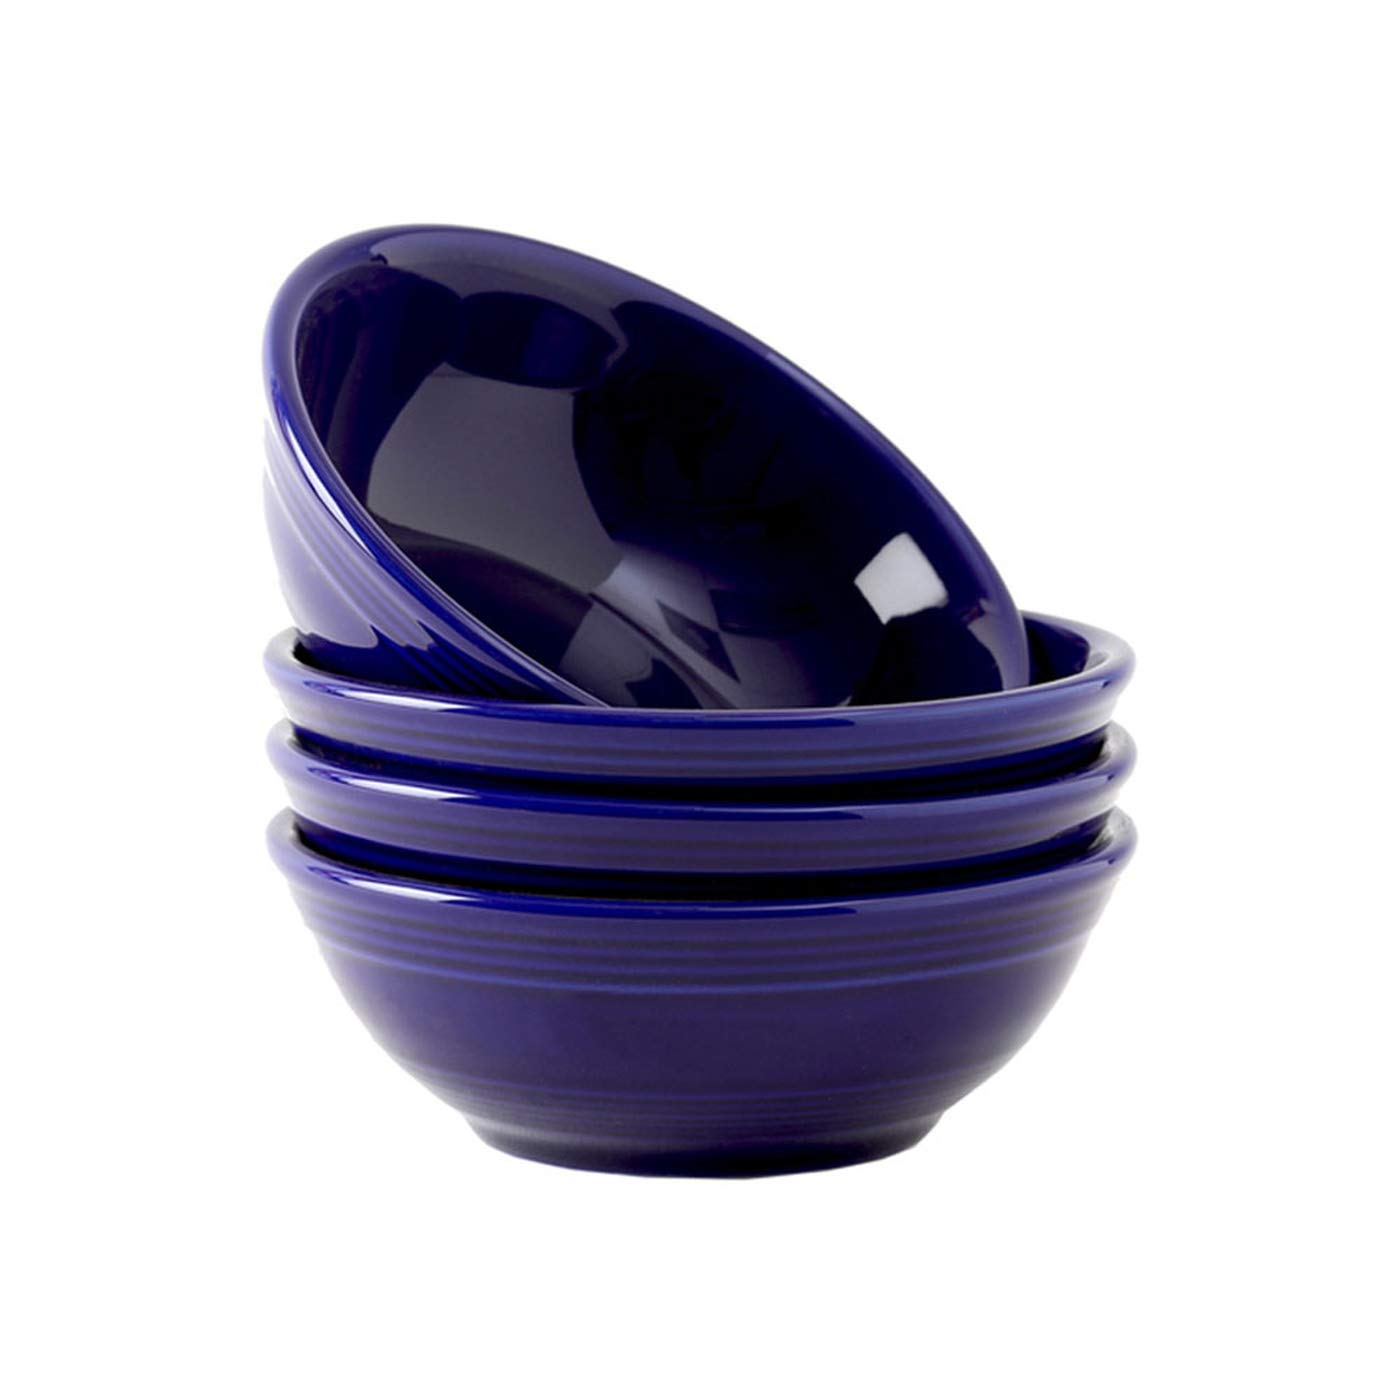 Tuxton Home Concentrix Bowl (Set of 4), 13 oz, Cobalt Blue; Heavy Duty; Chip Resistant; Lead and Cadmium Free; Freezer to Oven Safe up to 500F